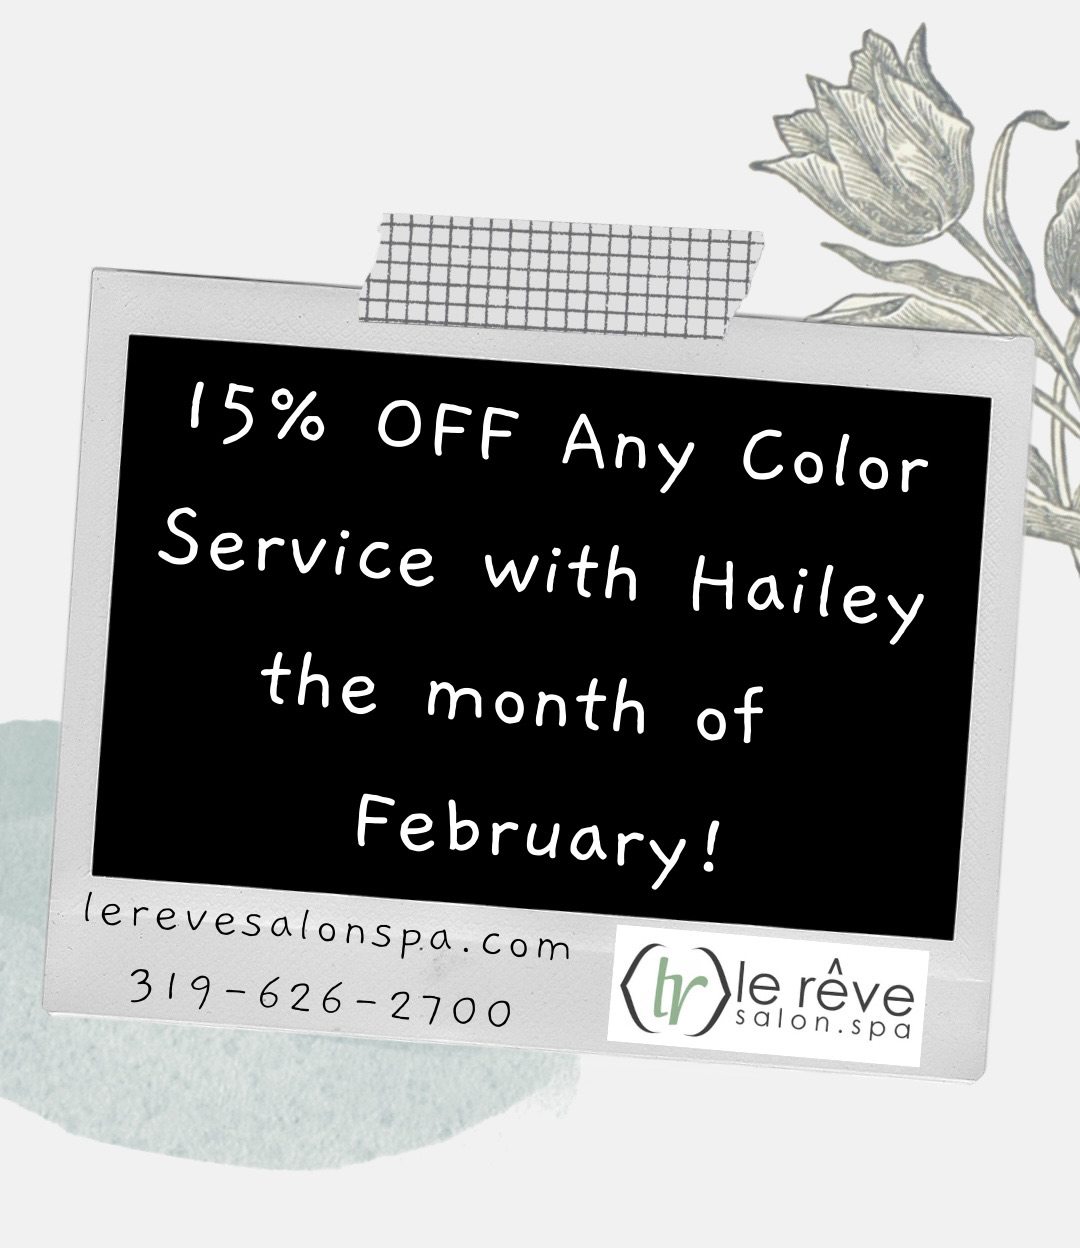 15% off any color service - Le Reve Salon